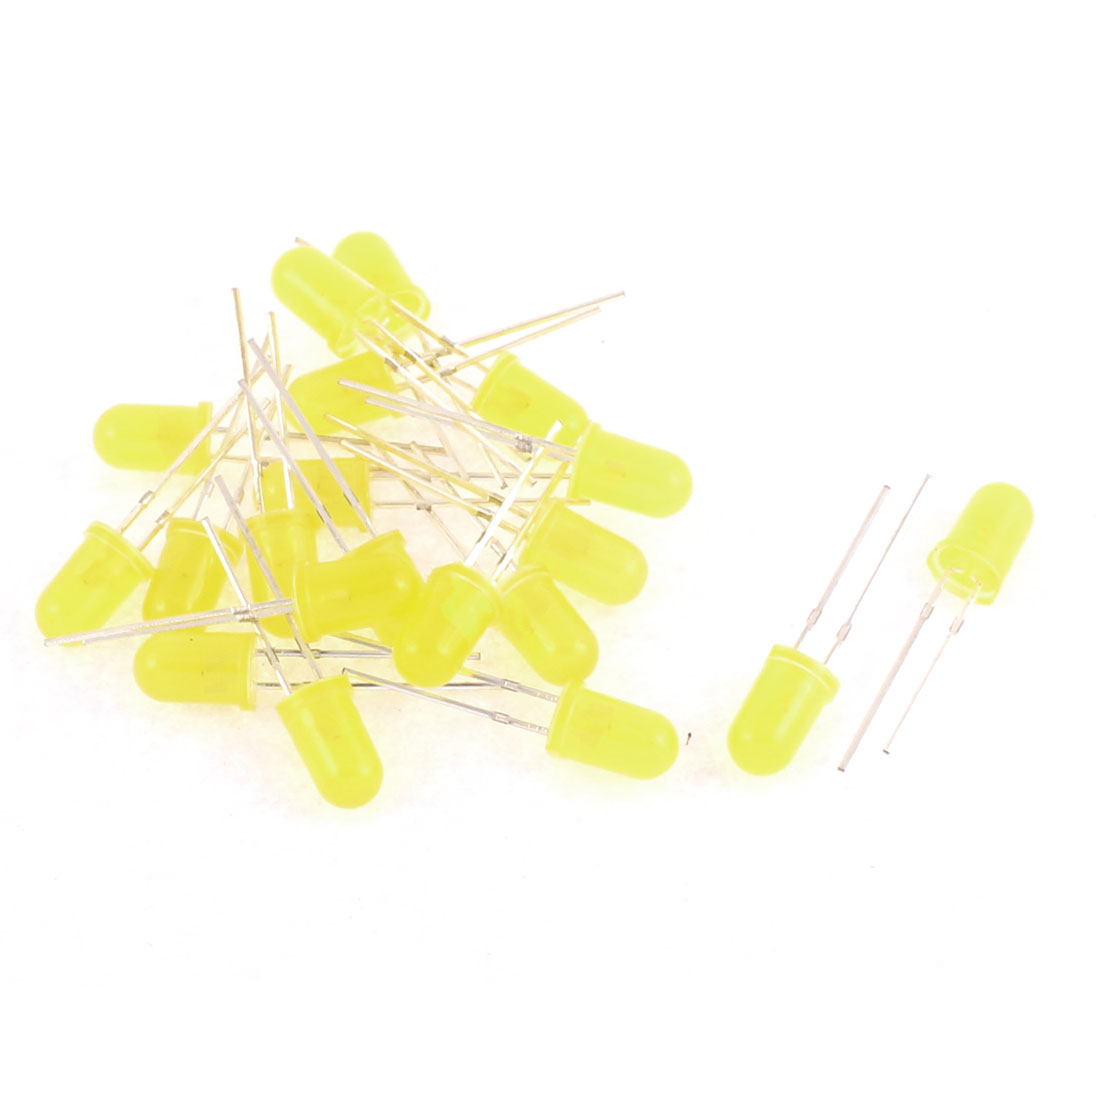 20pcs 5mm Round Yellow Color Light Emitting Diode LEDs Bulds